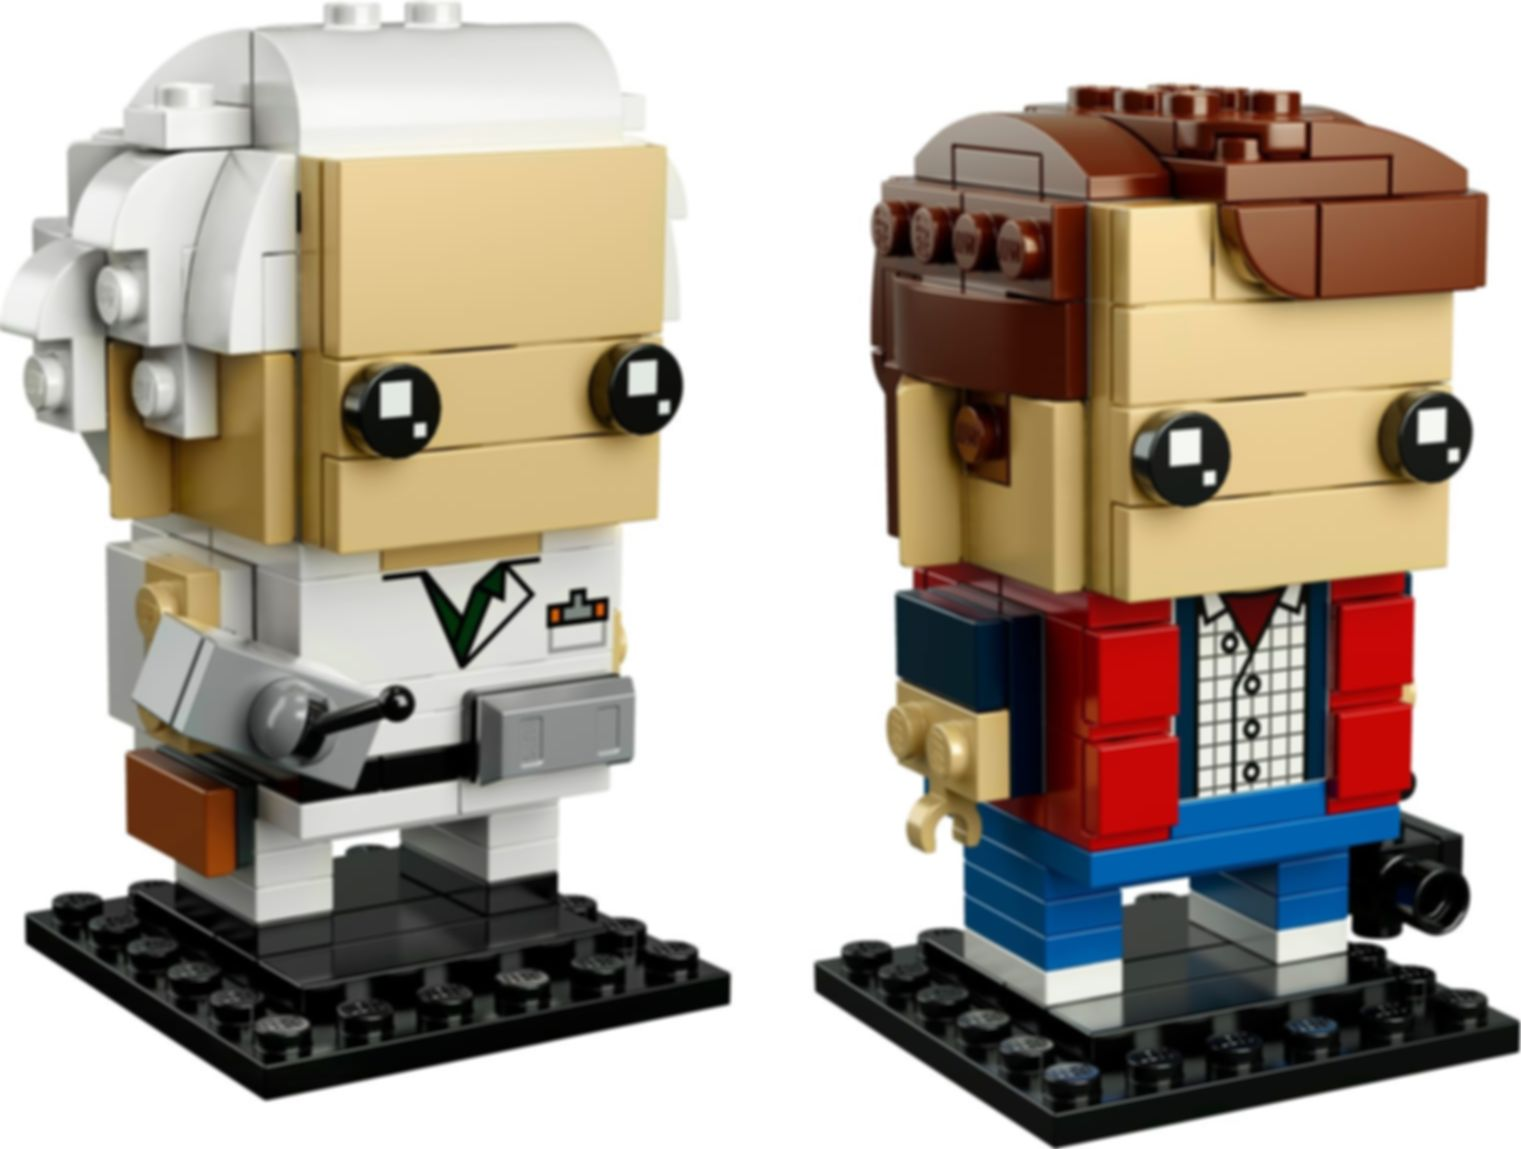 Marty McFly & Doc Brown components